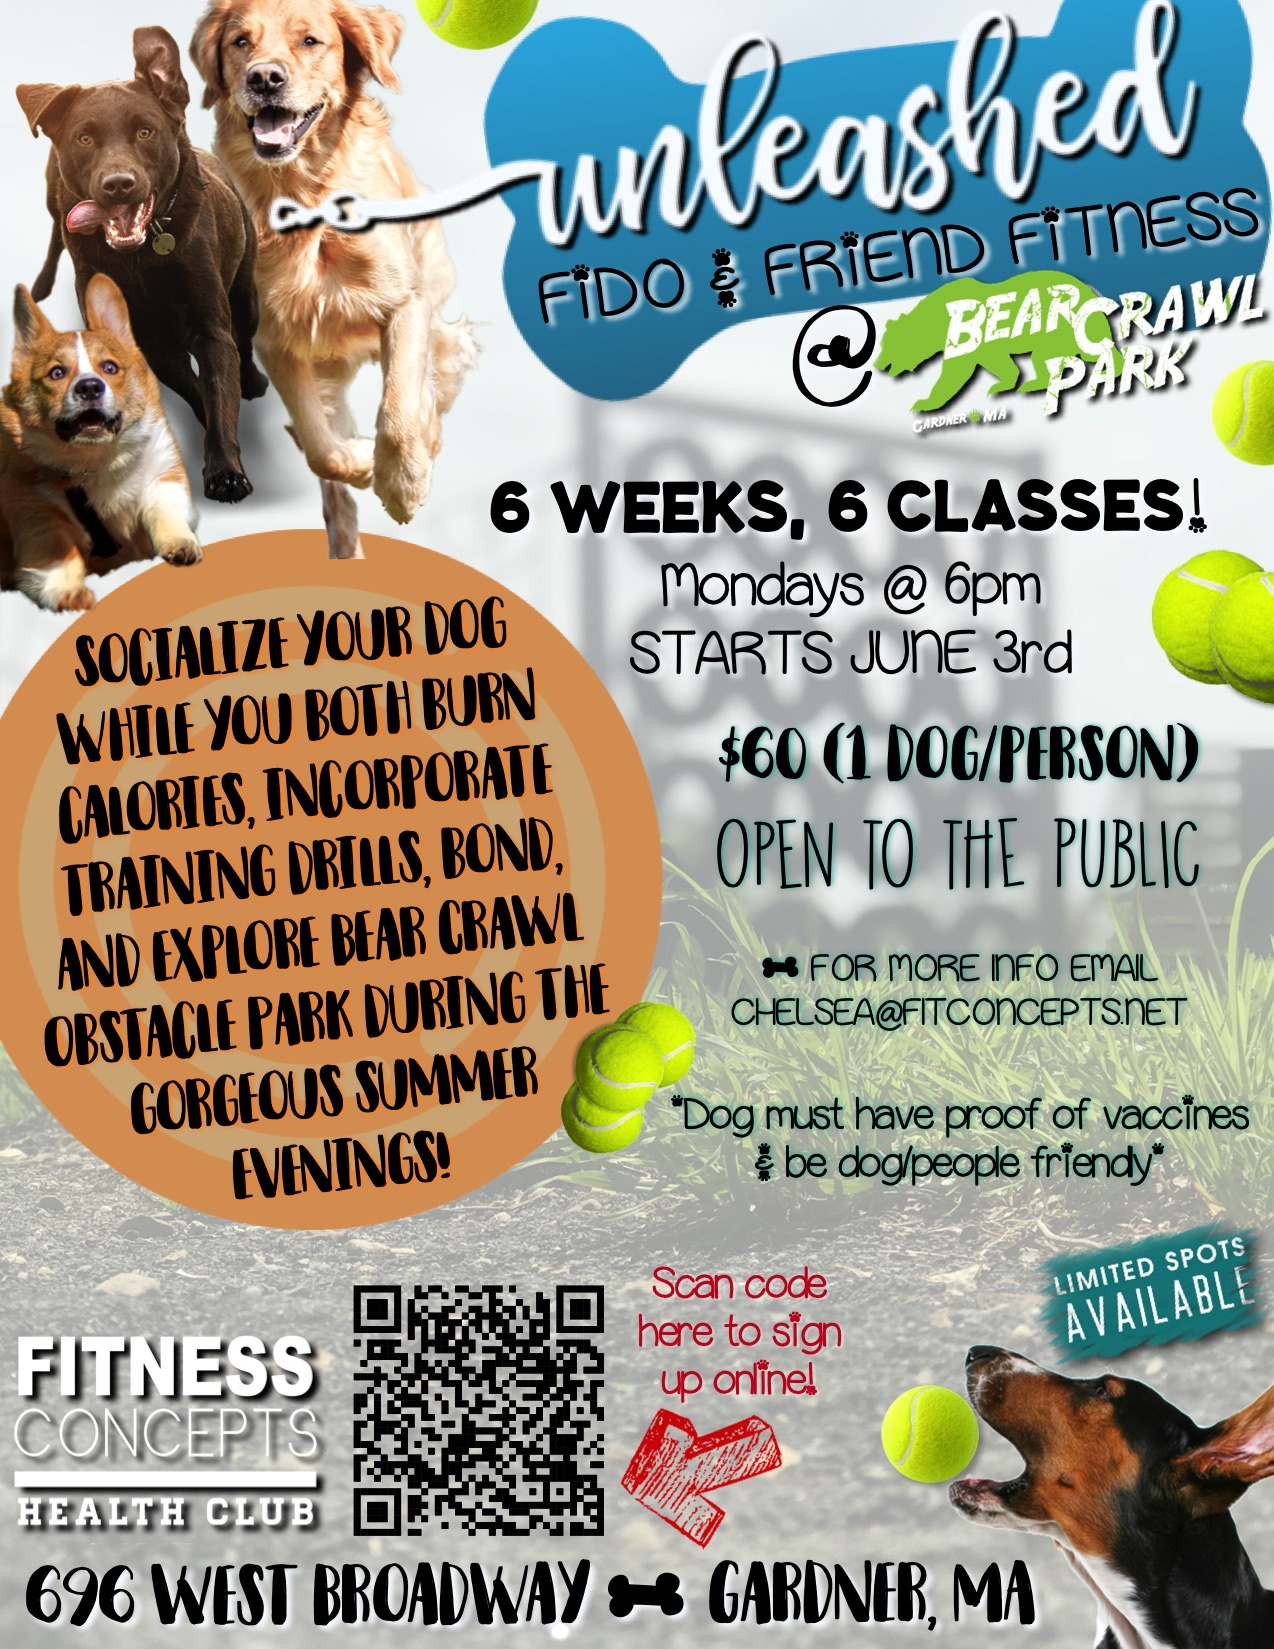 unleashed fido and friend fitness.jpeg